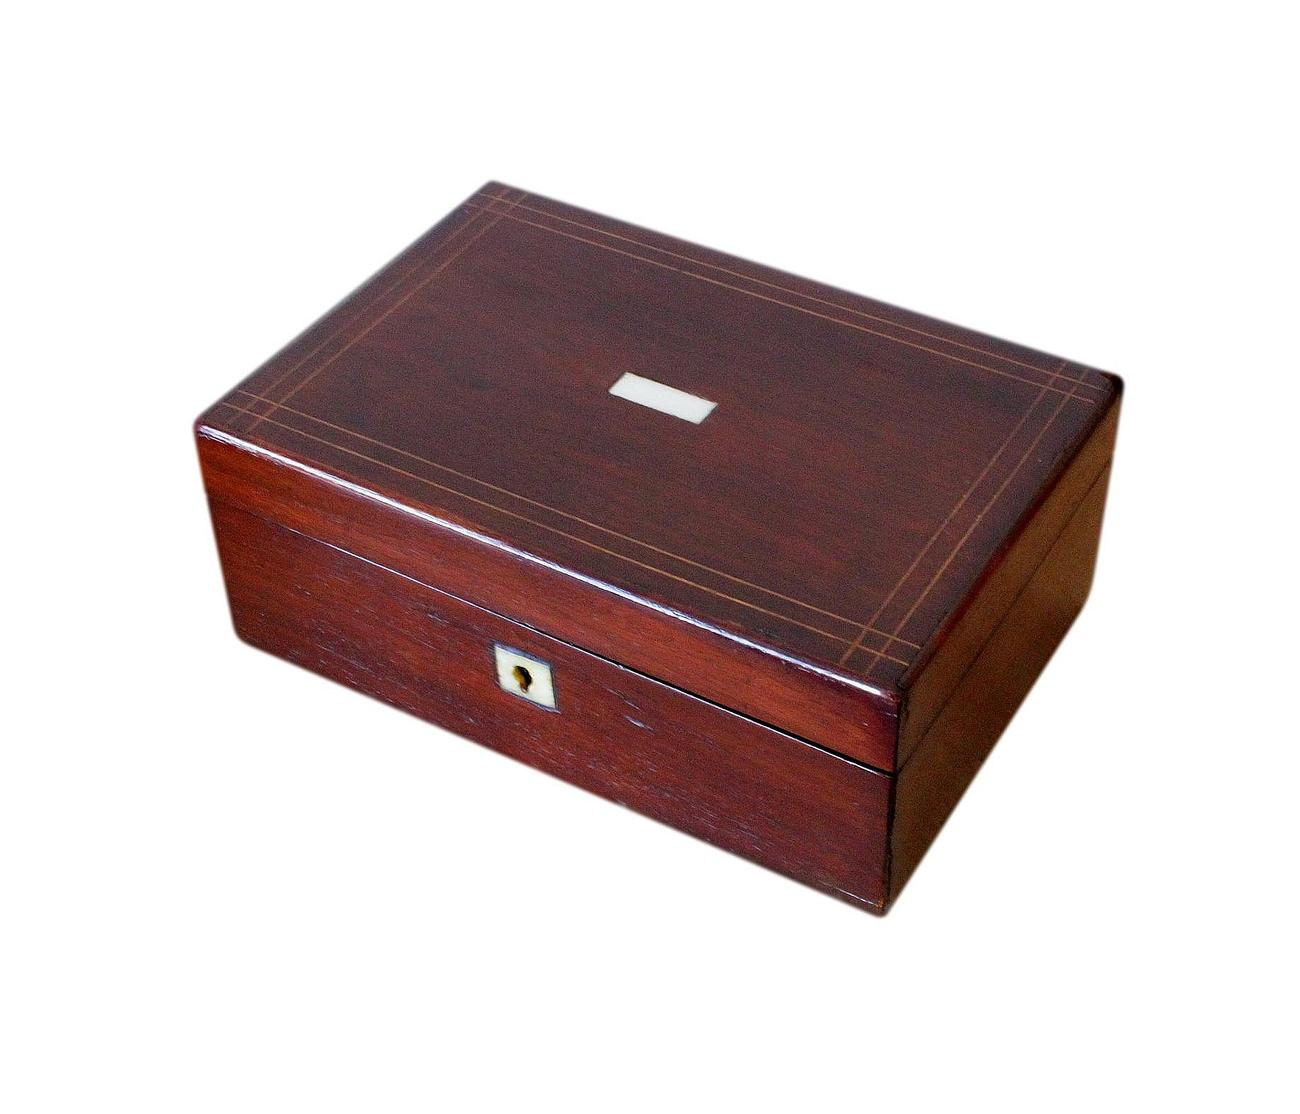 Antique_Mahogany_Jewellery_Box_2.jpg